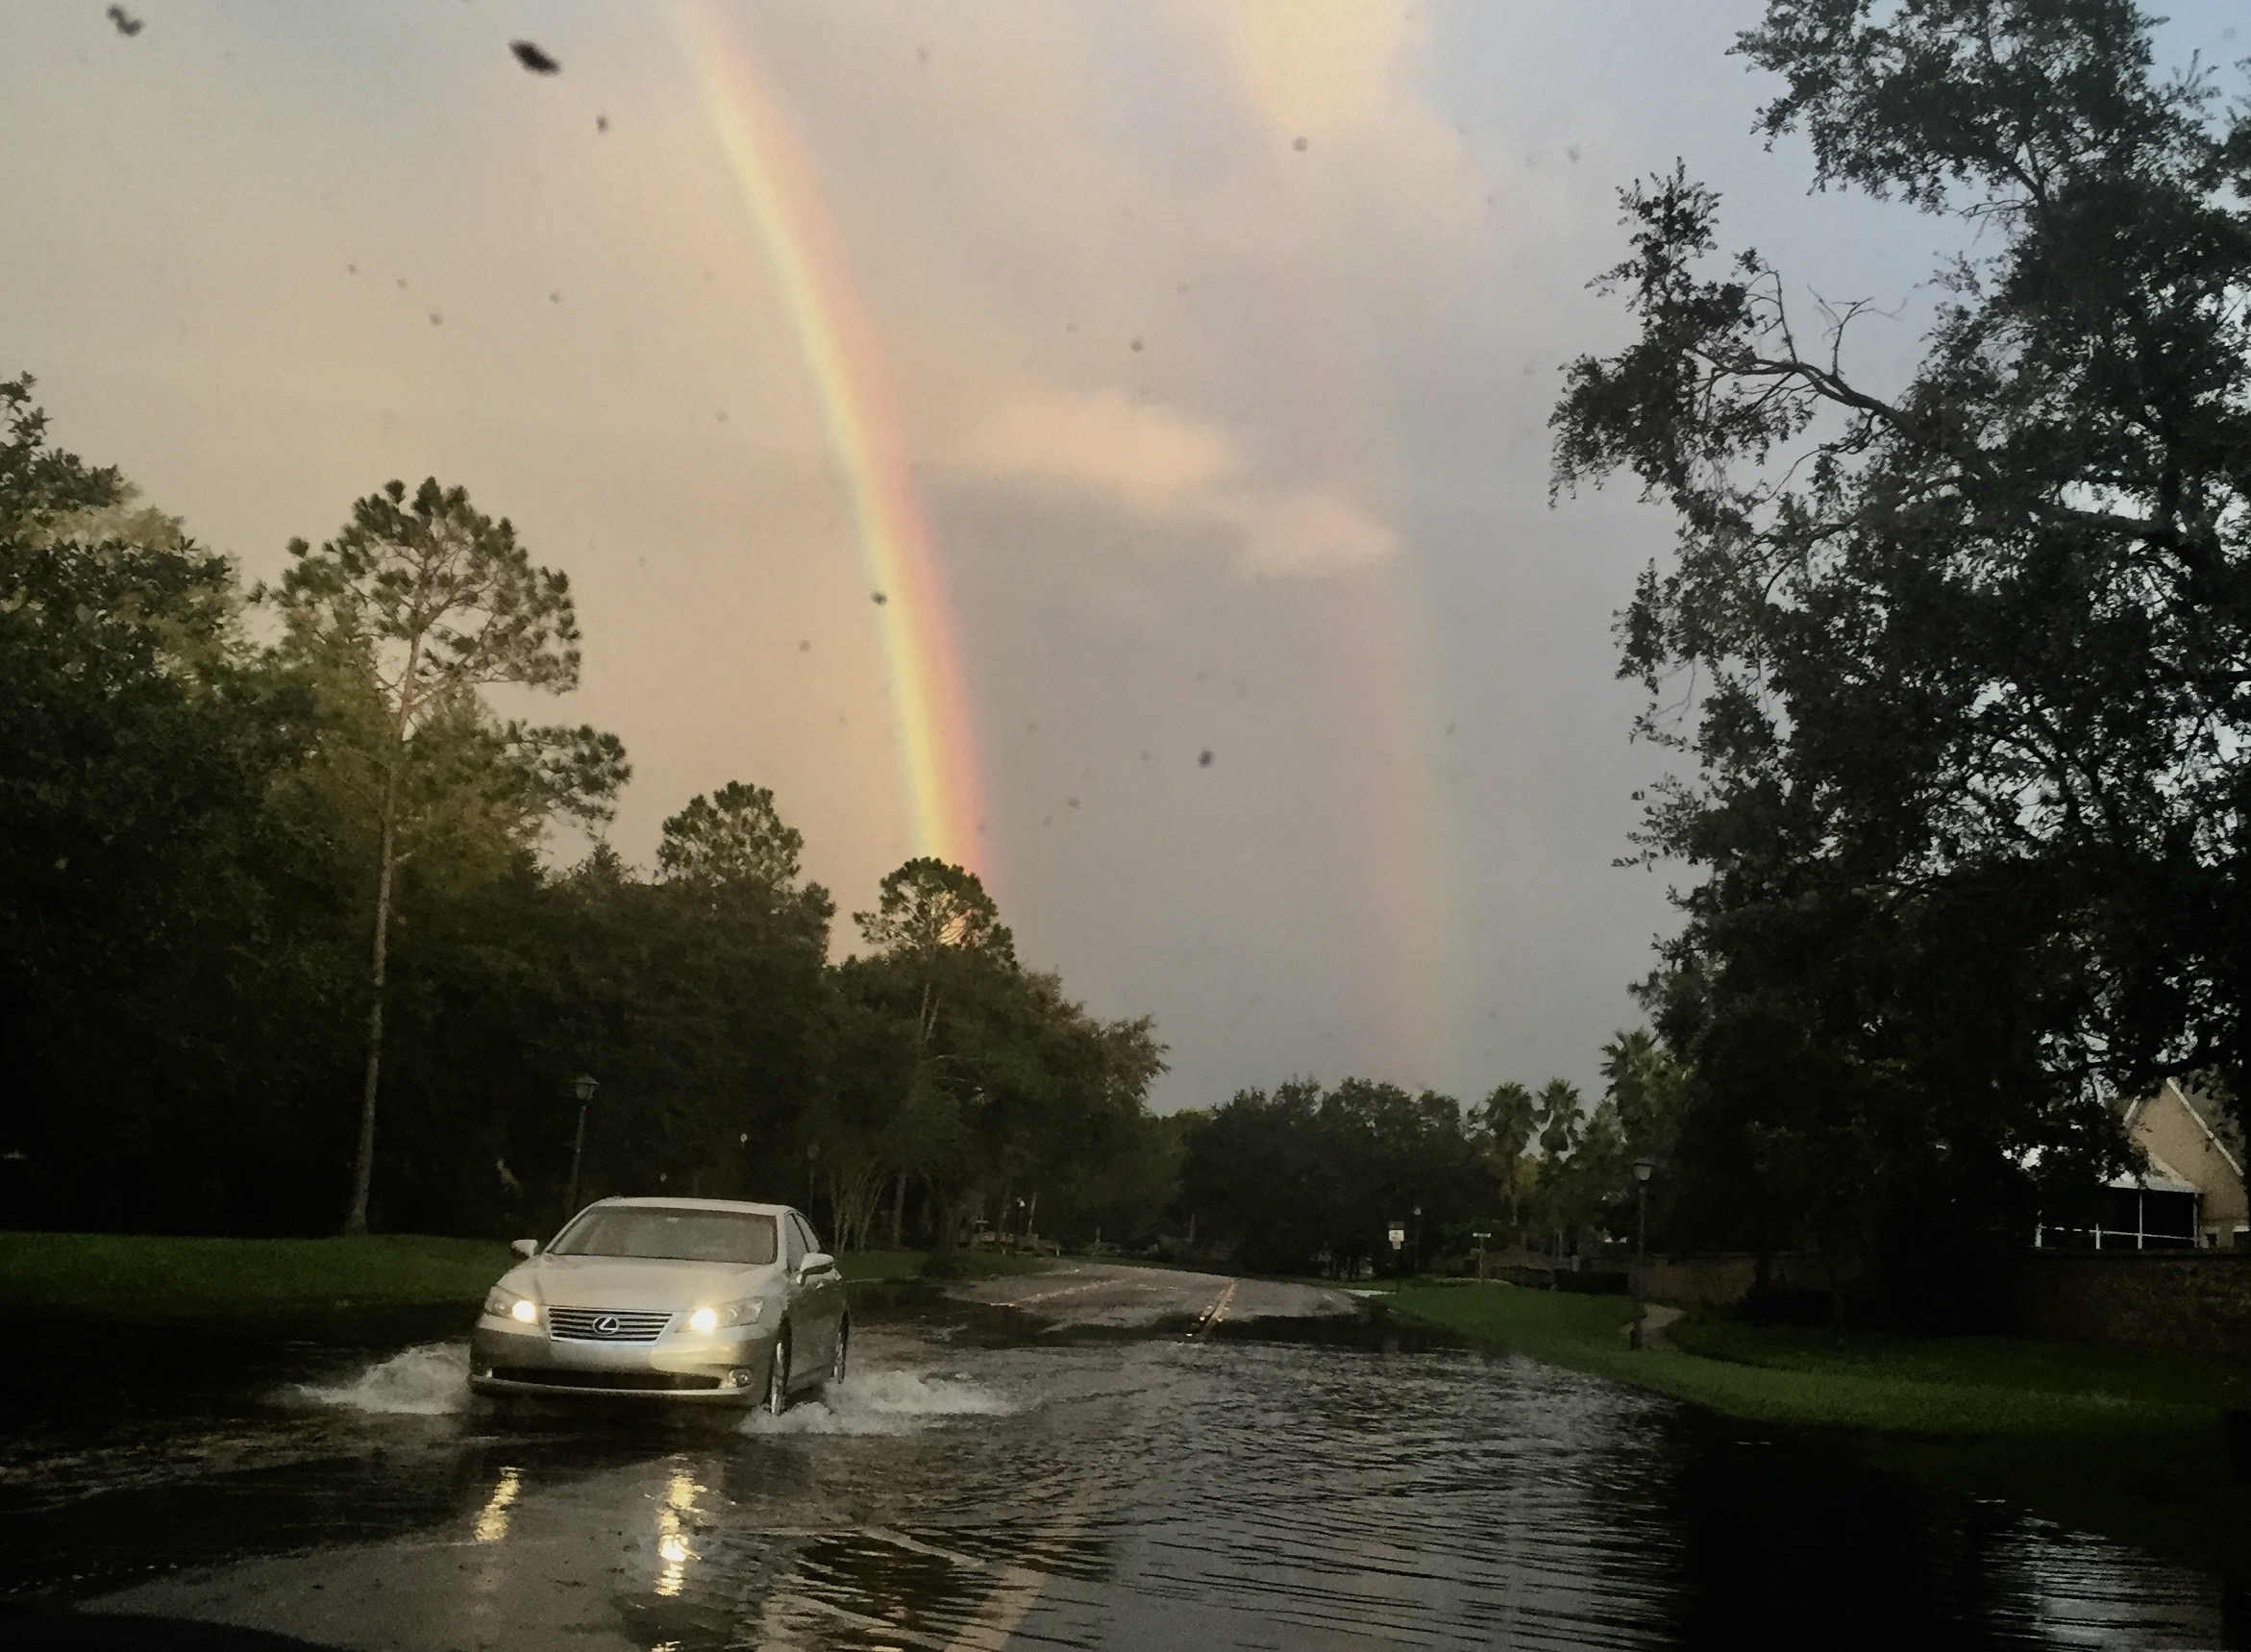 The double rainbow, as we drove thru flooded street, was a promise